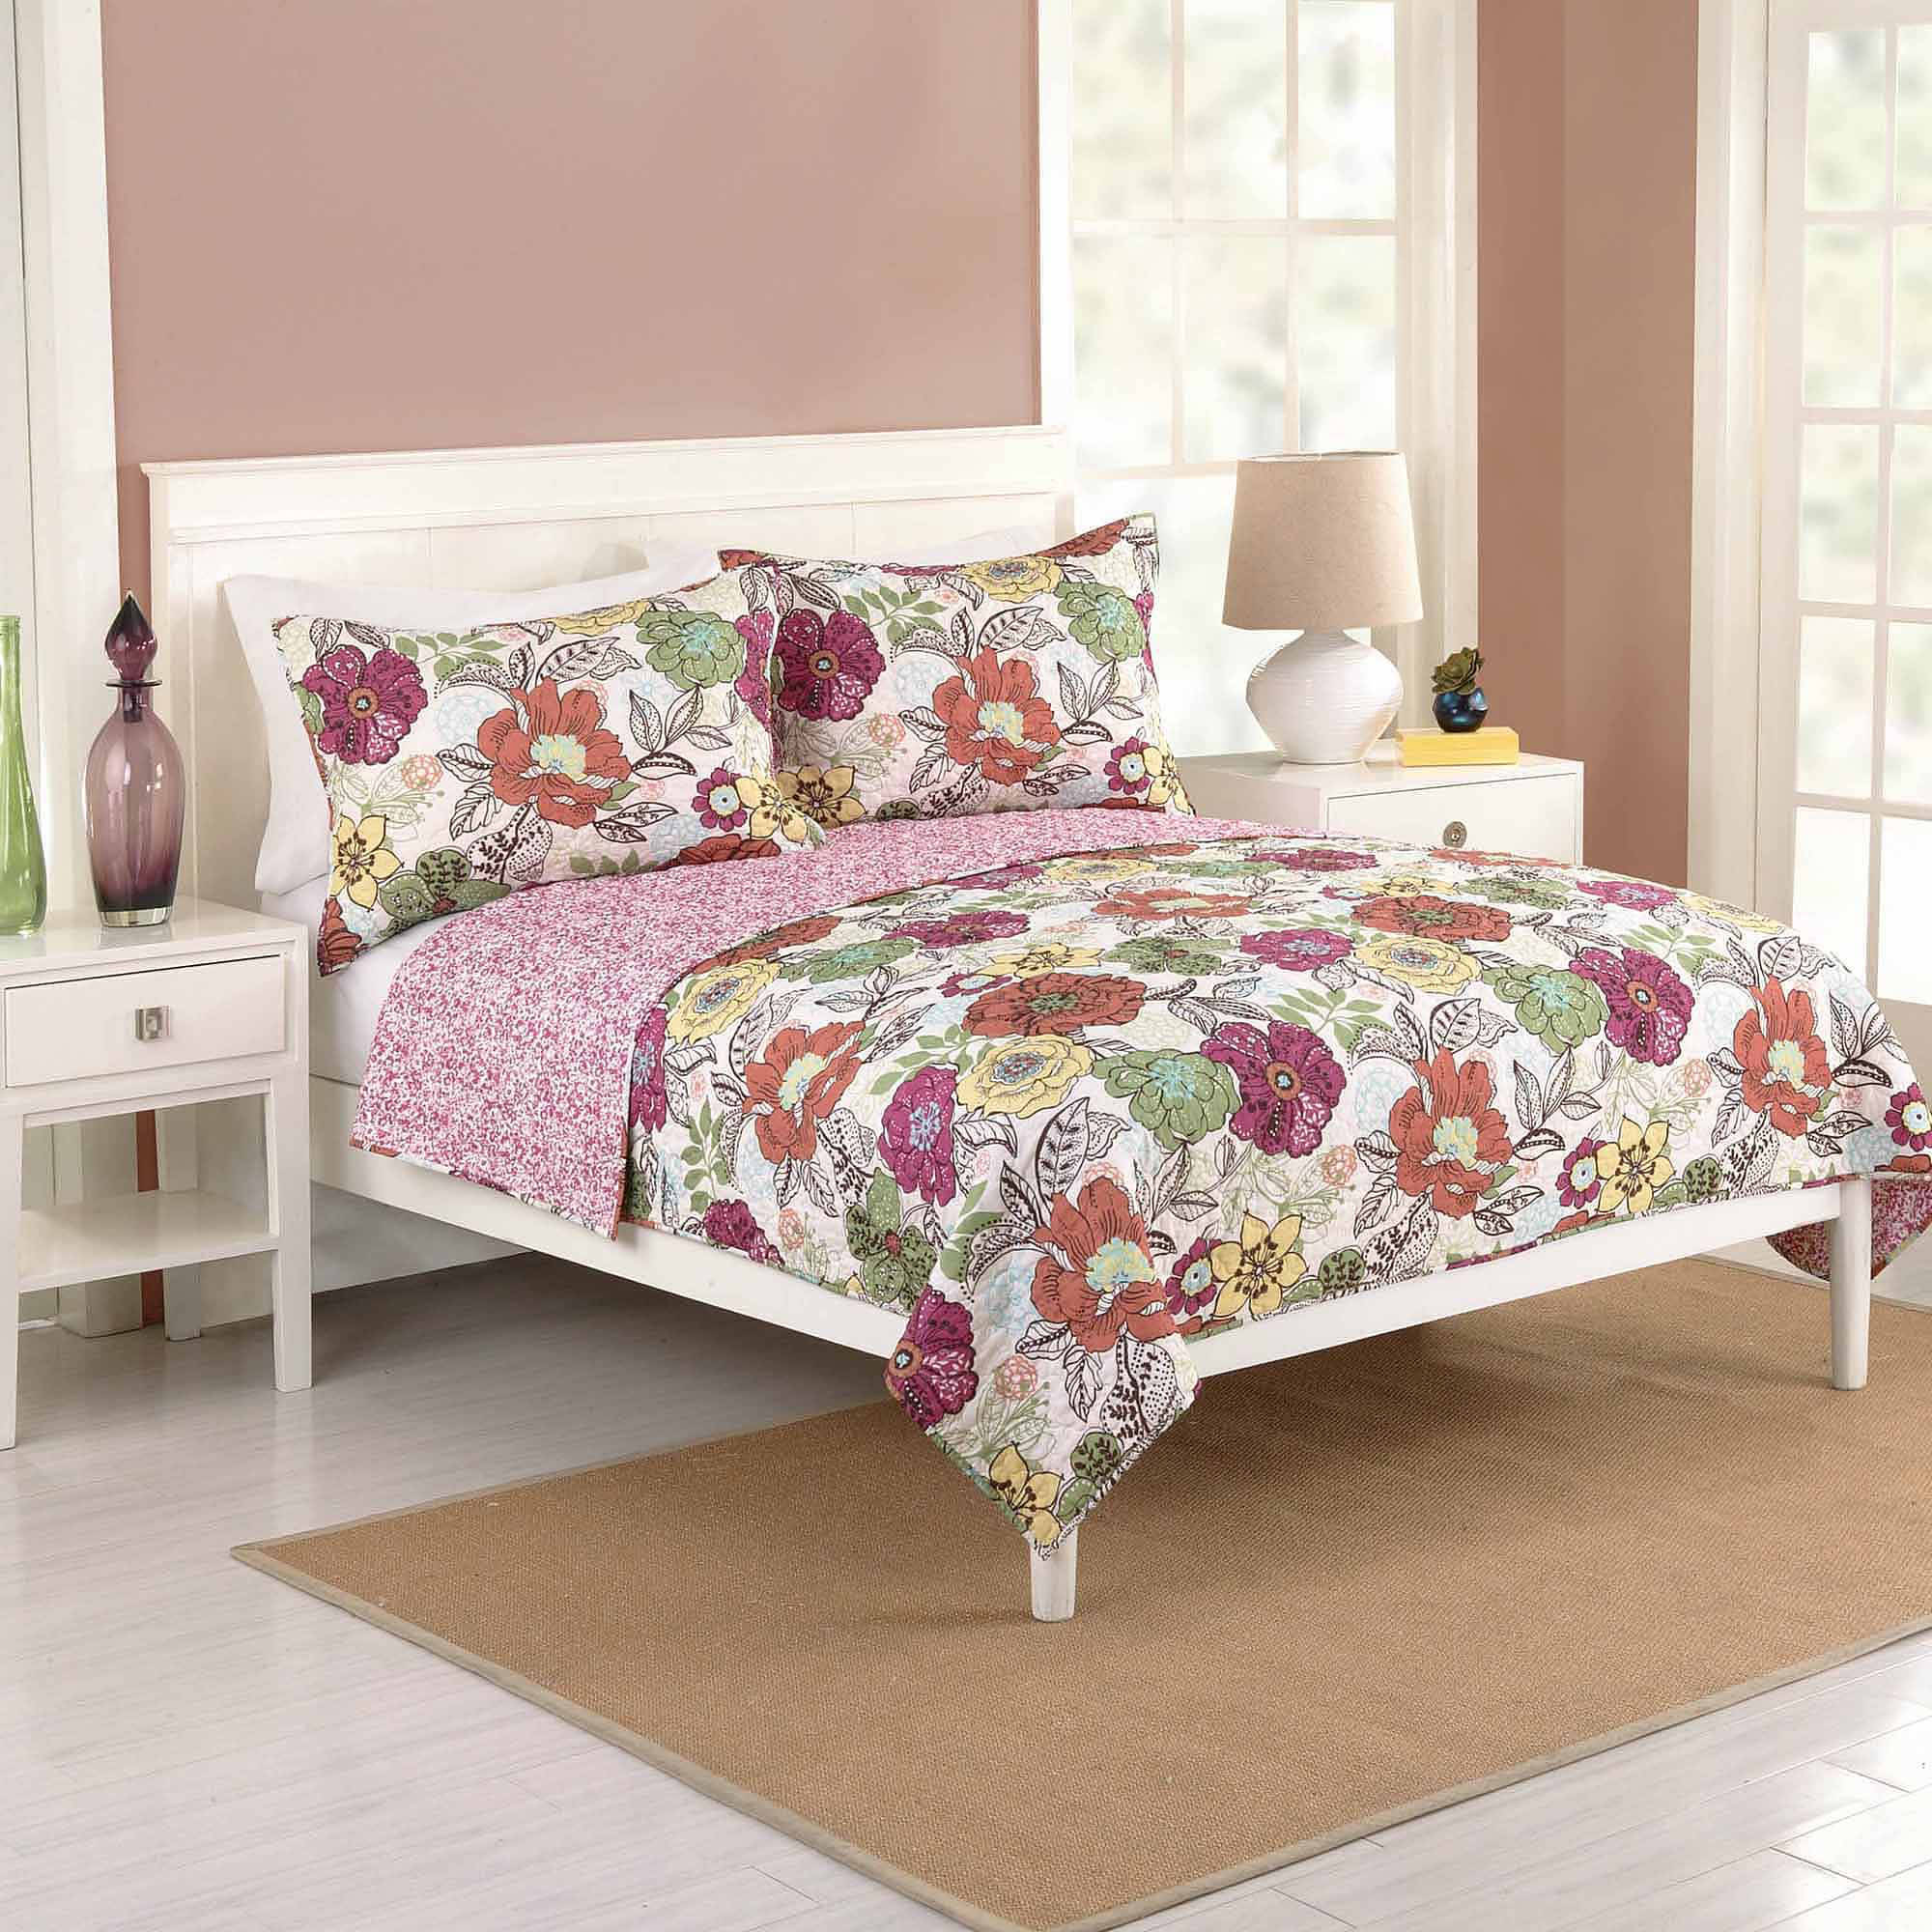 Better Homes and Gardens Passion Flower Bedding Quilt by KRISS